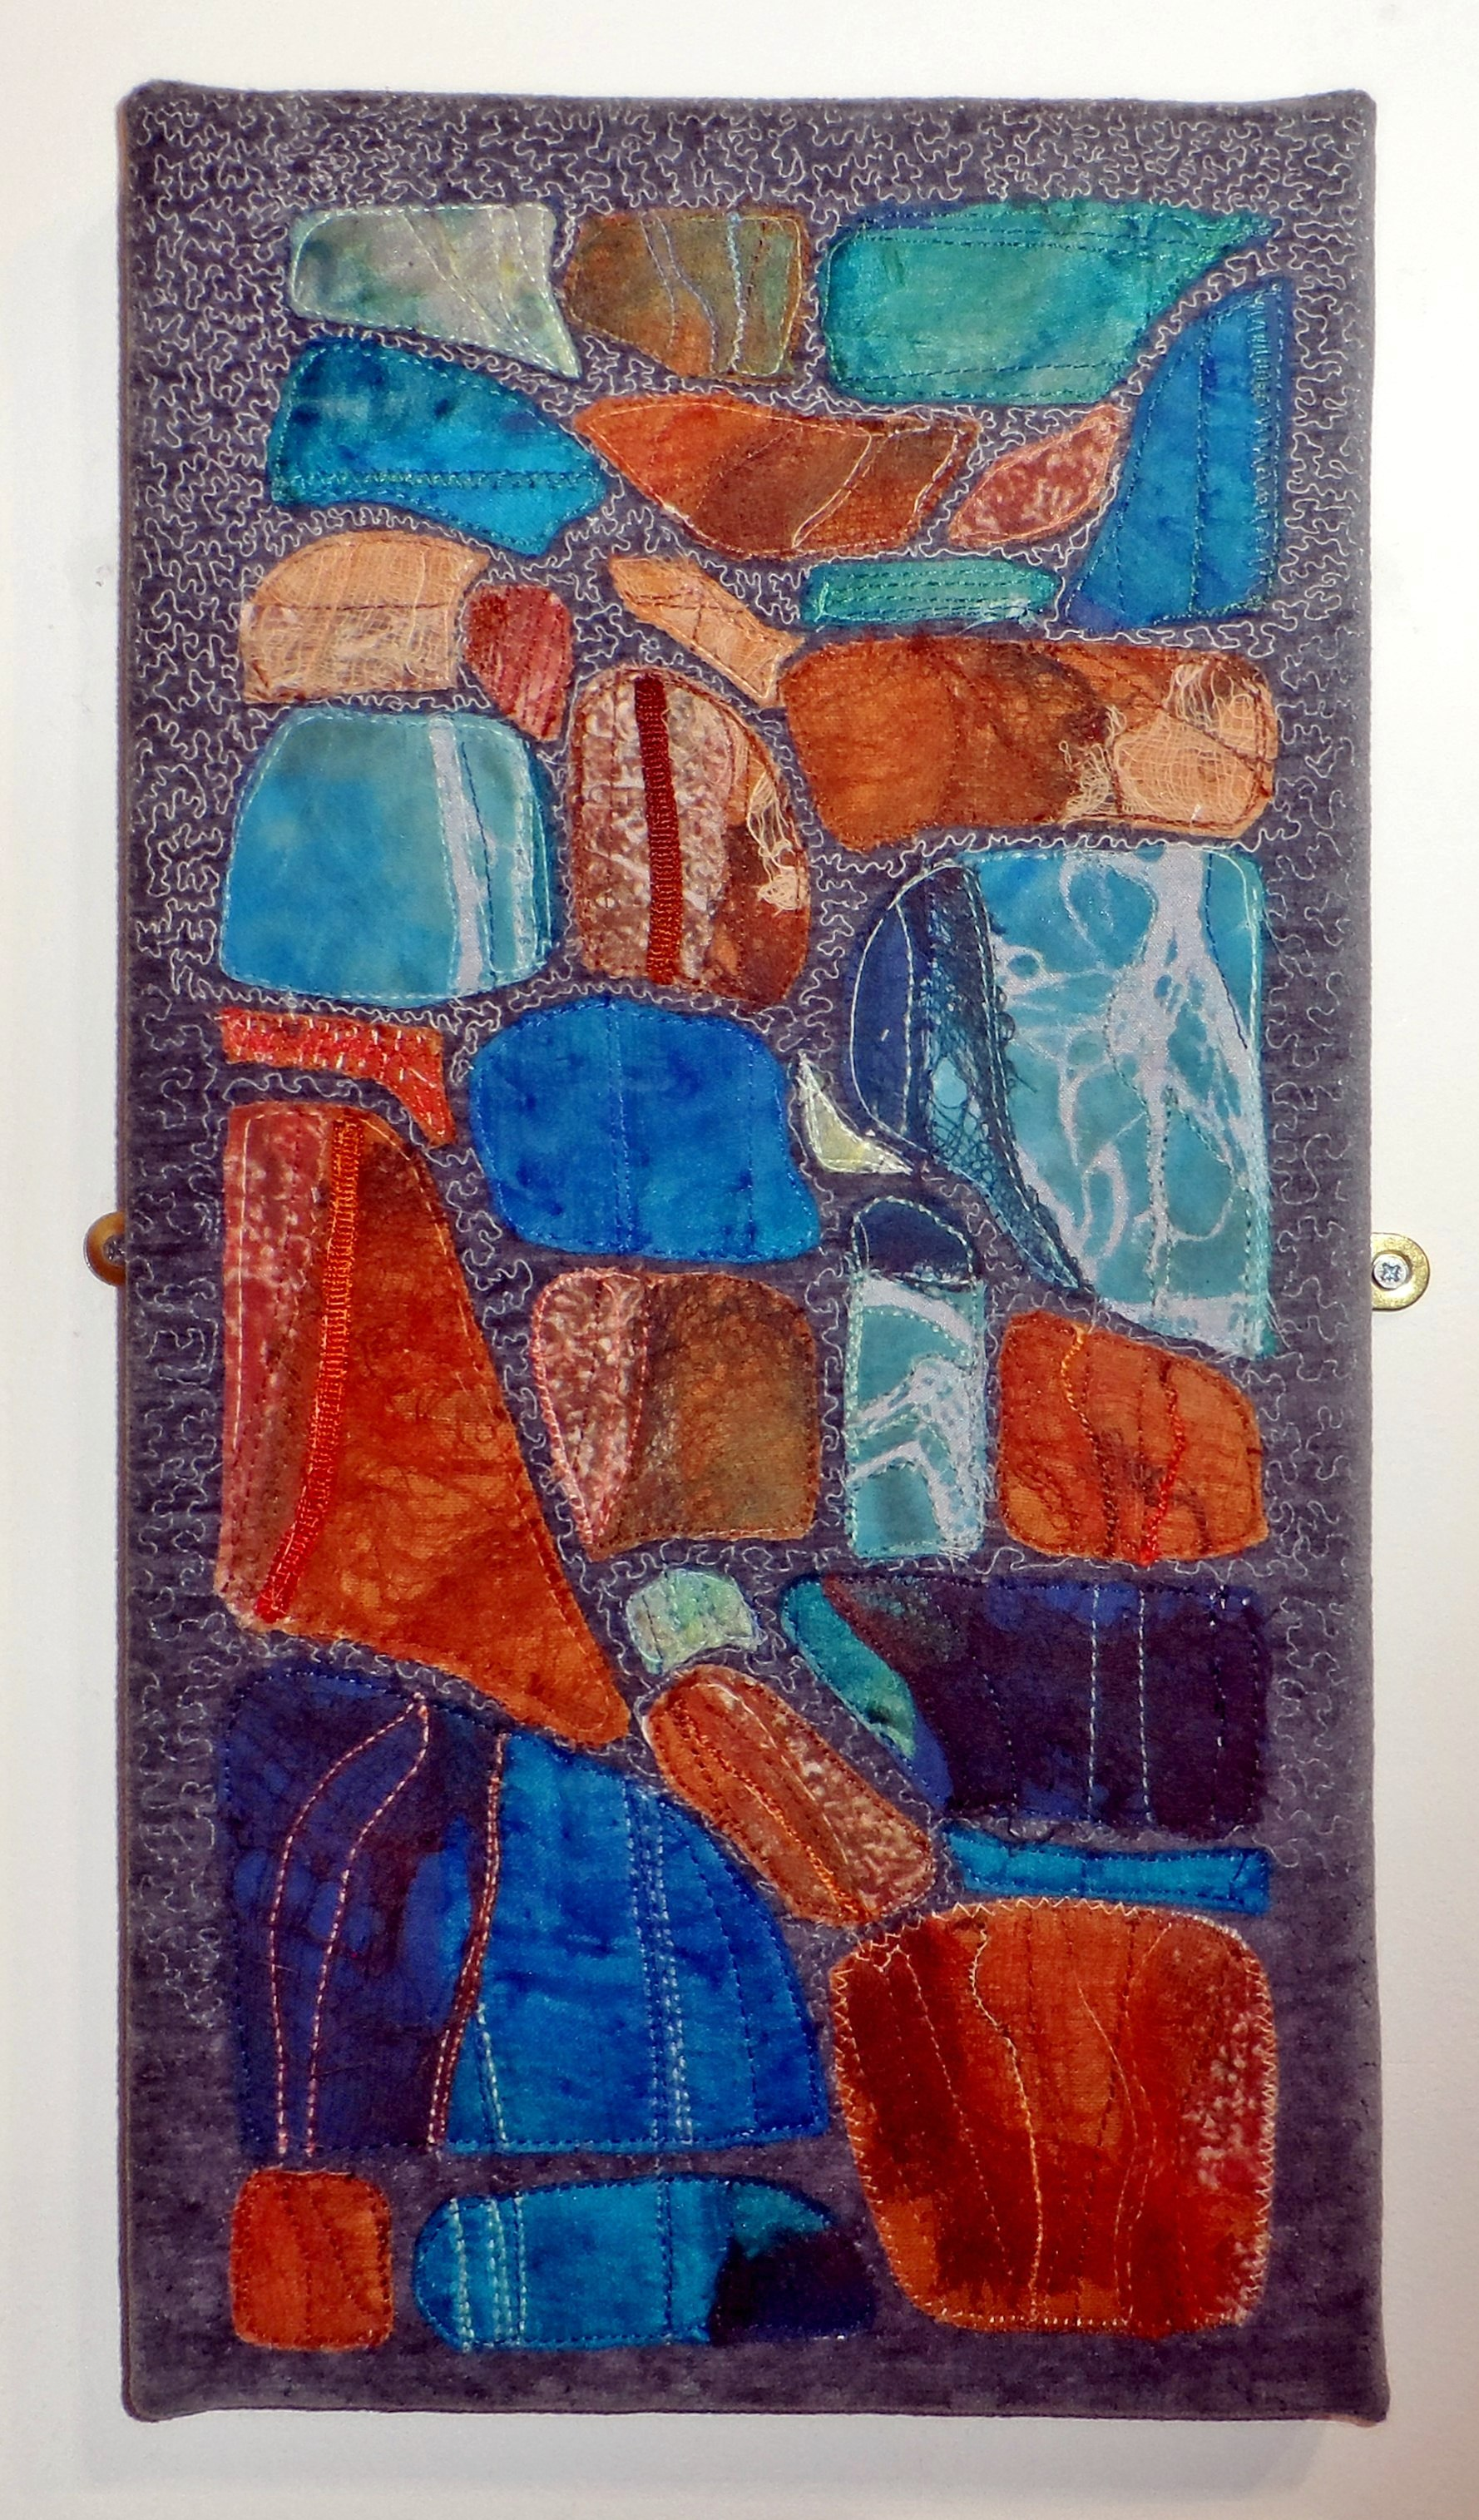 THE STONES REMAIN by Mary Bryning, Re-View Textile Group, Frodsham 2019